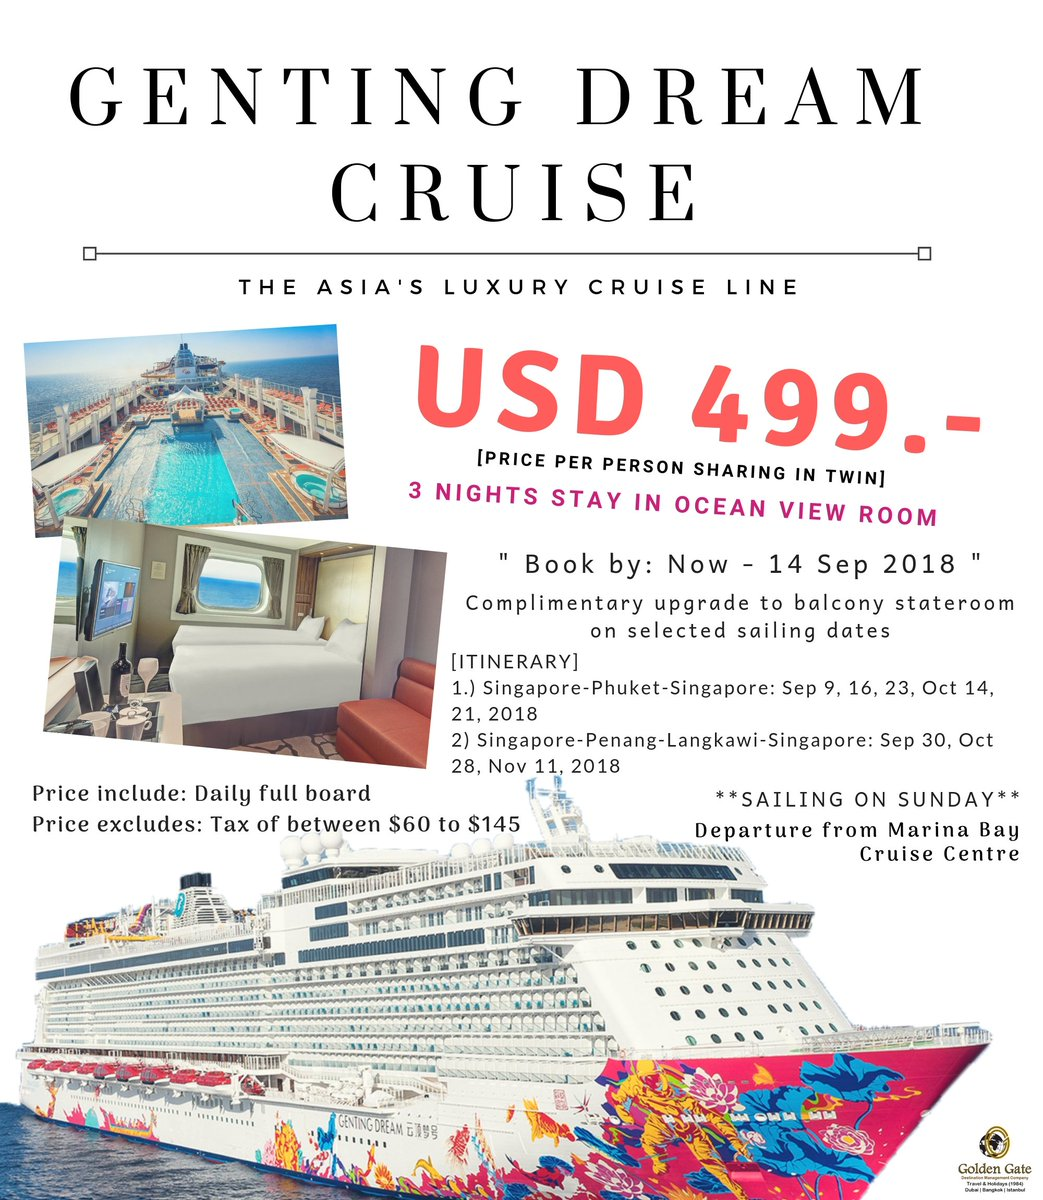 Gateholidays On Twitter 3 Nights Cruise With Genting Dream Cruise The Luxury Cruise Line In Asia Book By Now 14 Sep 2018 Contact Info Gateholidays Ae Info Bkk Gateholidays Com Cruise Gentingdreamcruise Dreamcruise Singapore Marinabay